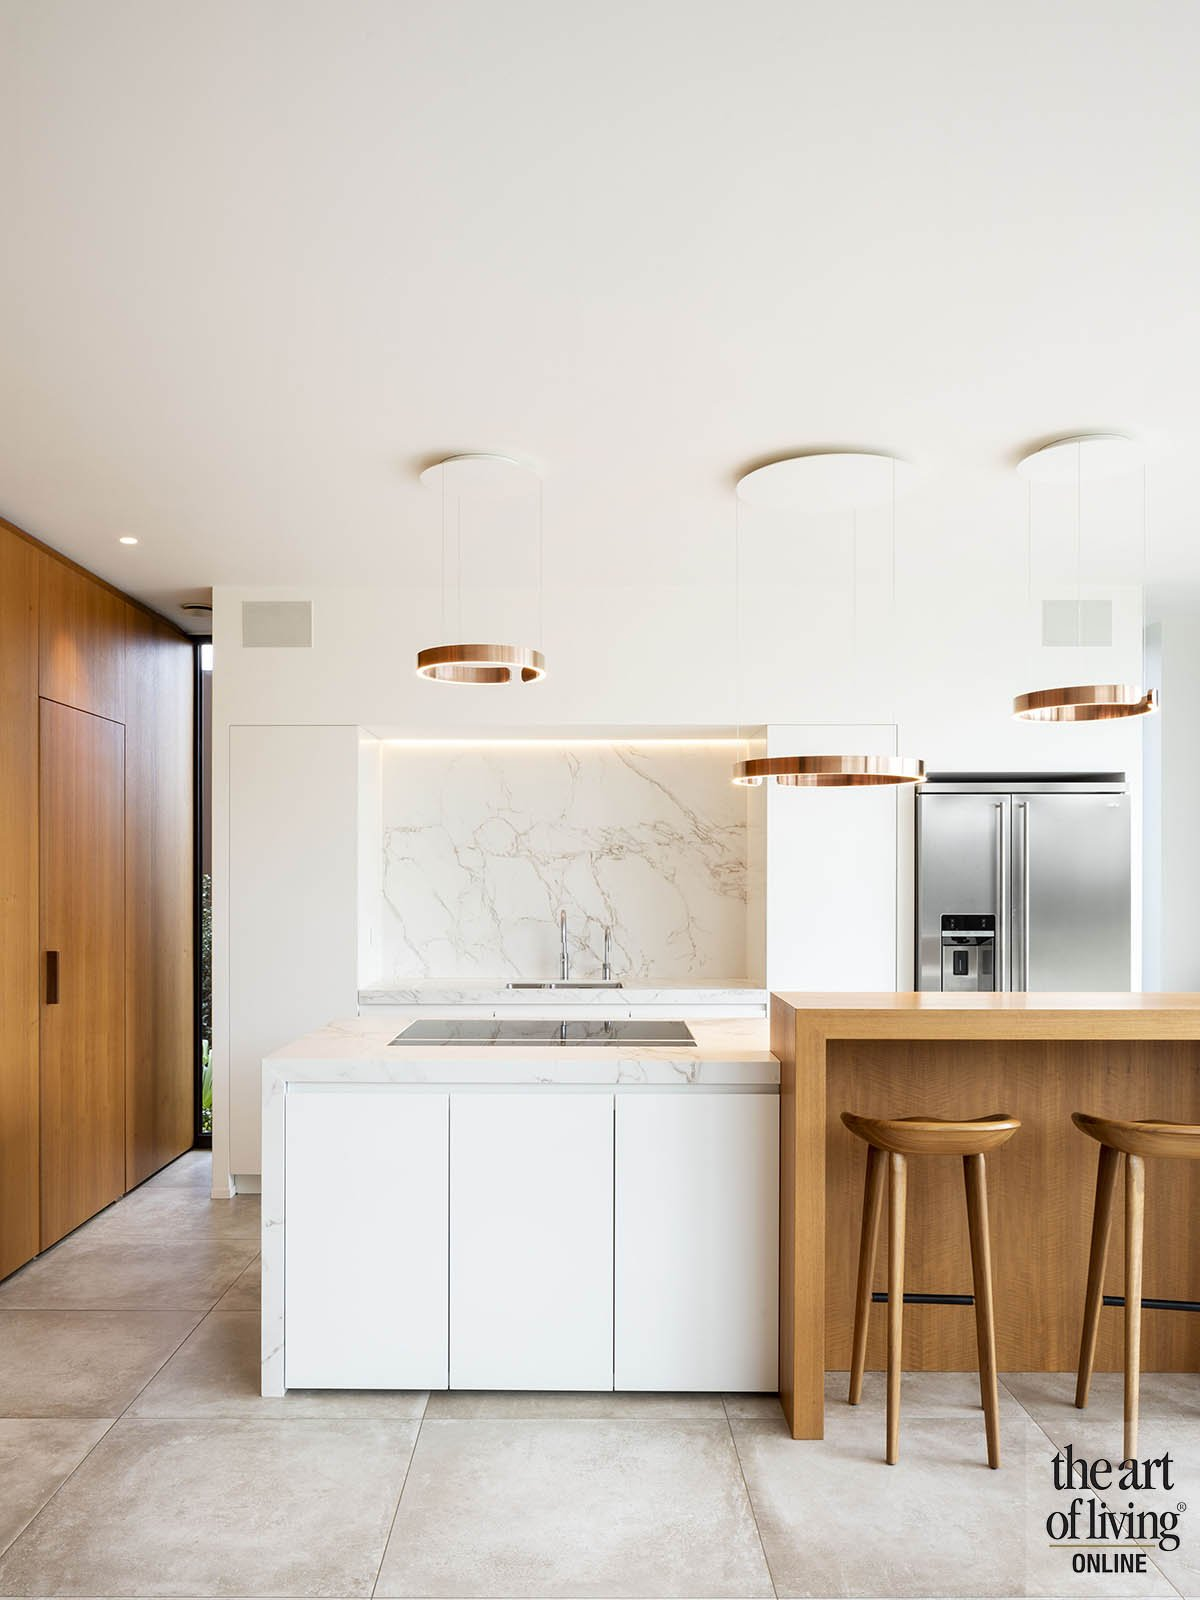 hoge ramen   Architects in Motion, the art of living